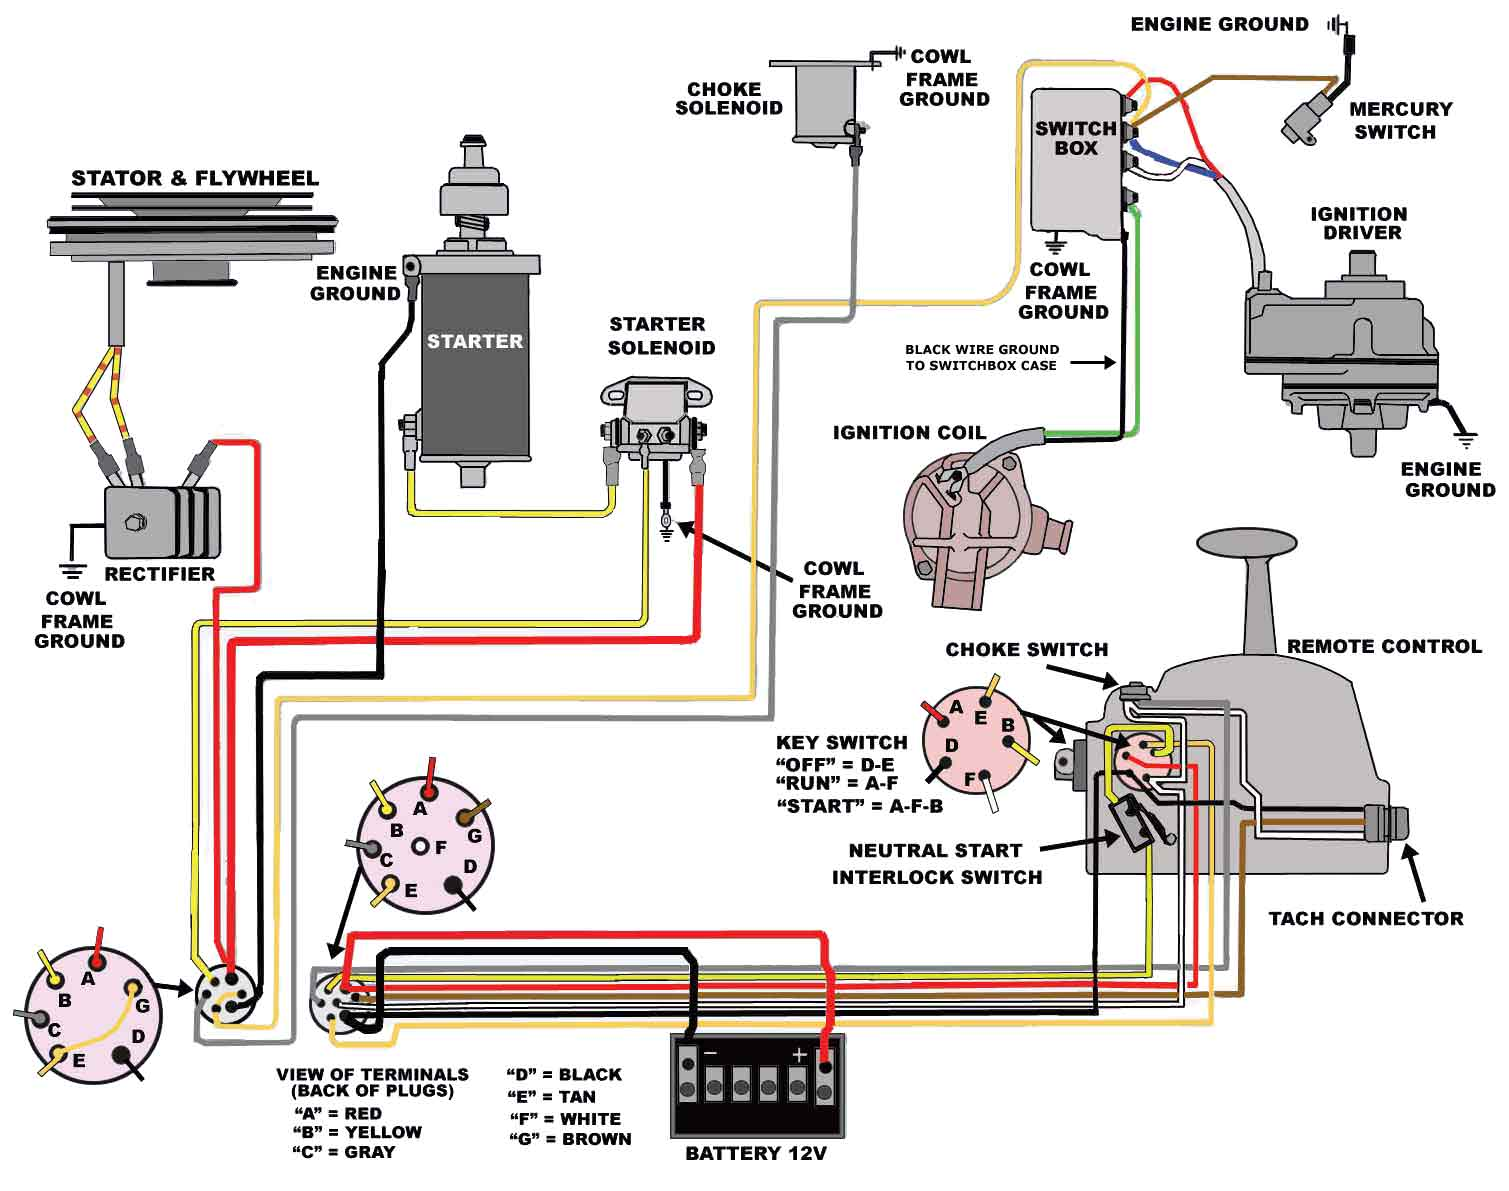 mercury 800 wiring diagram wiring diagram todaysmercury 800 wiring diagram everything about wiring diagram \\u2022 mercury marine wiring diagram mercury 800 wiring diagram